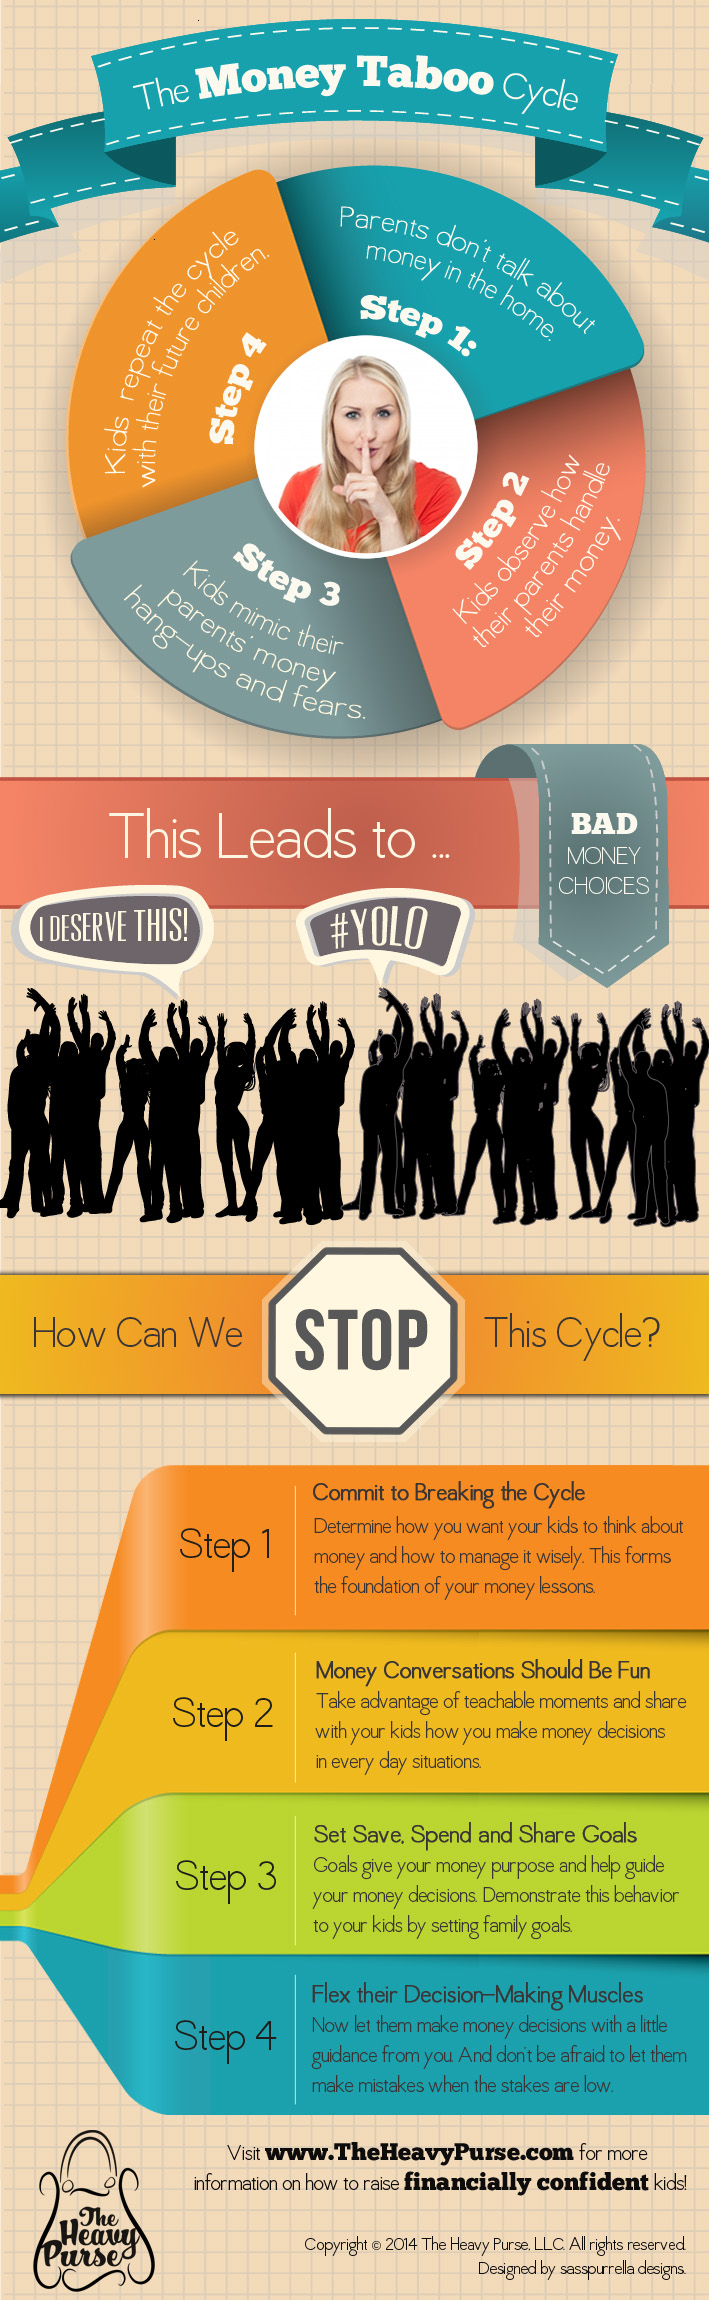 The Money Taboo Cycle #Infographic